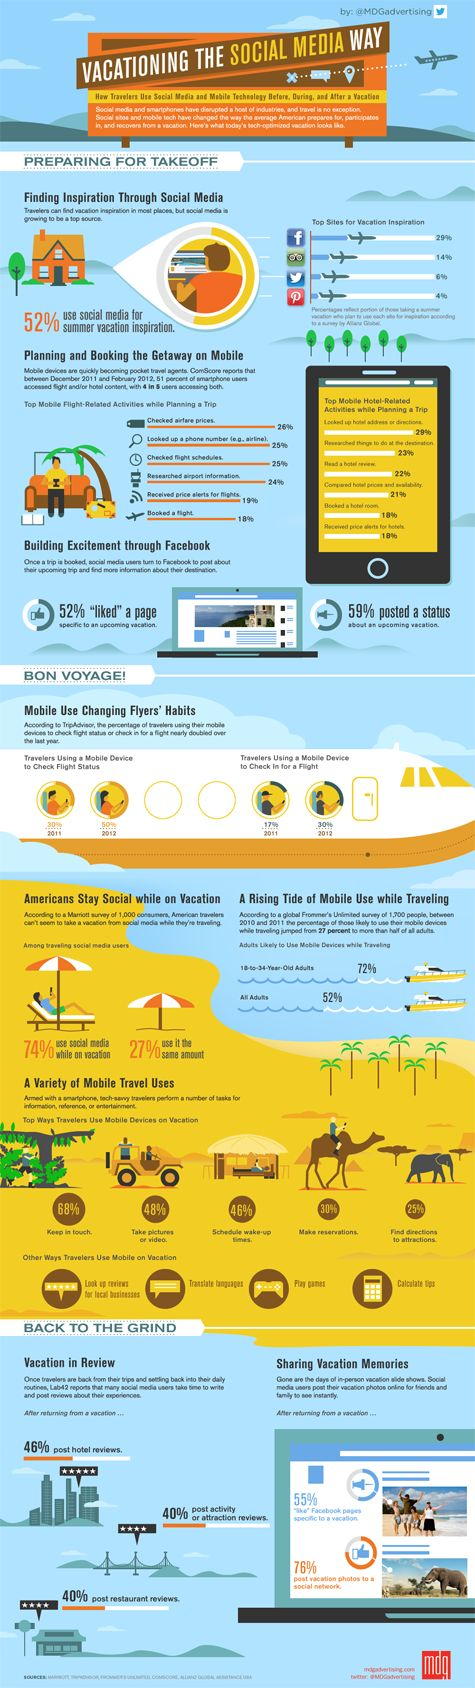 #Infographic - Vacationing the Social Media Way ► Social media's increasing influence on our daily lives has rapidly extended into the ways we get away. From planning a vacation with social media to posting reviews of our trips upon our return, there's no denying social media's impact on travel today. To demonstrate how more and more people are using social media and mobile technology throughout their vacations, MDG Advertising developed the following informative...  #Travel #SocialMedia…